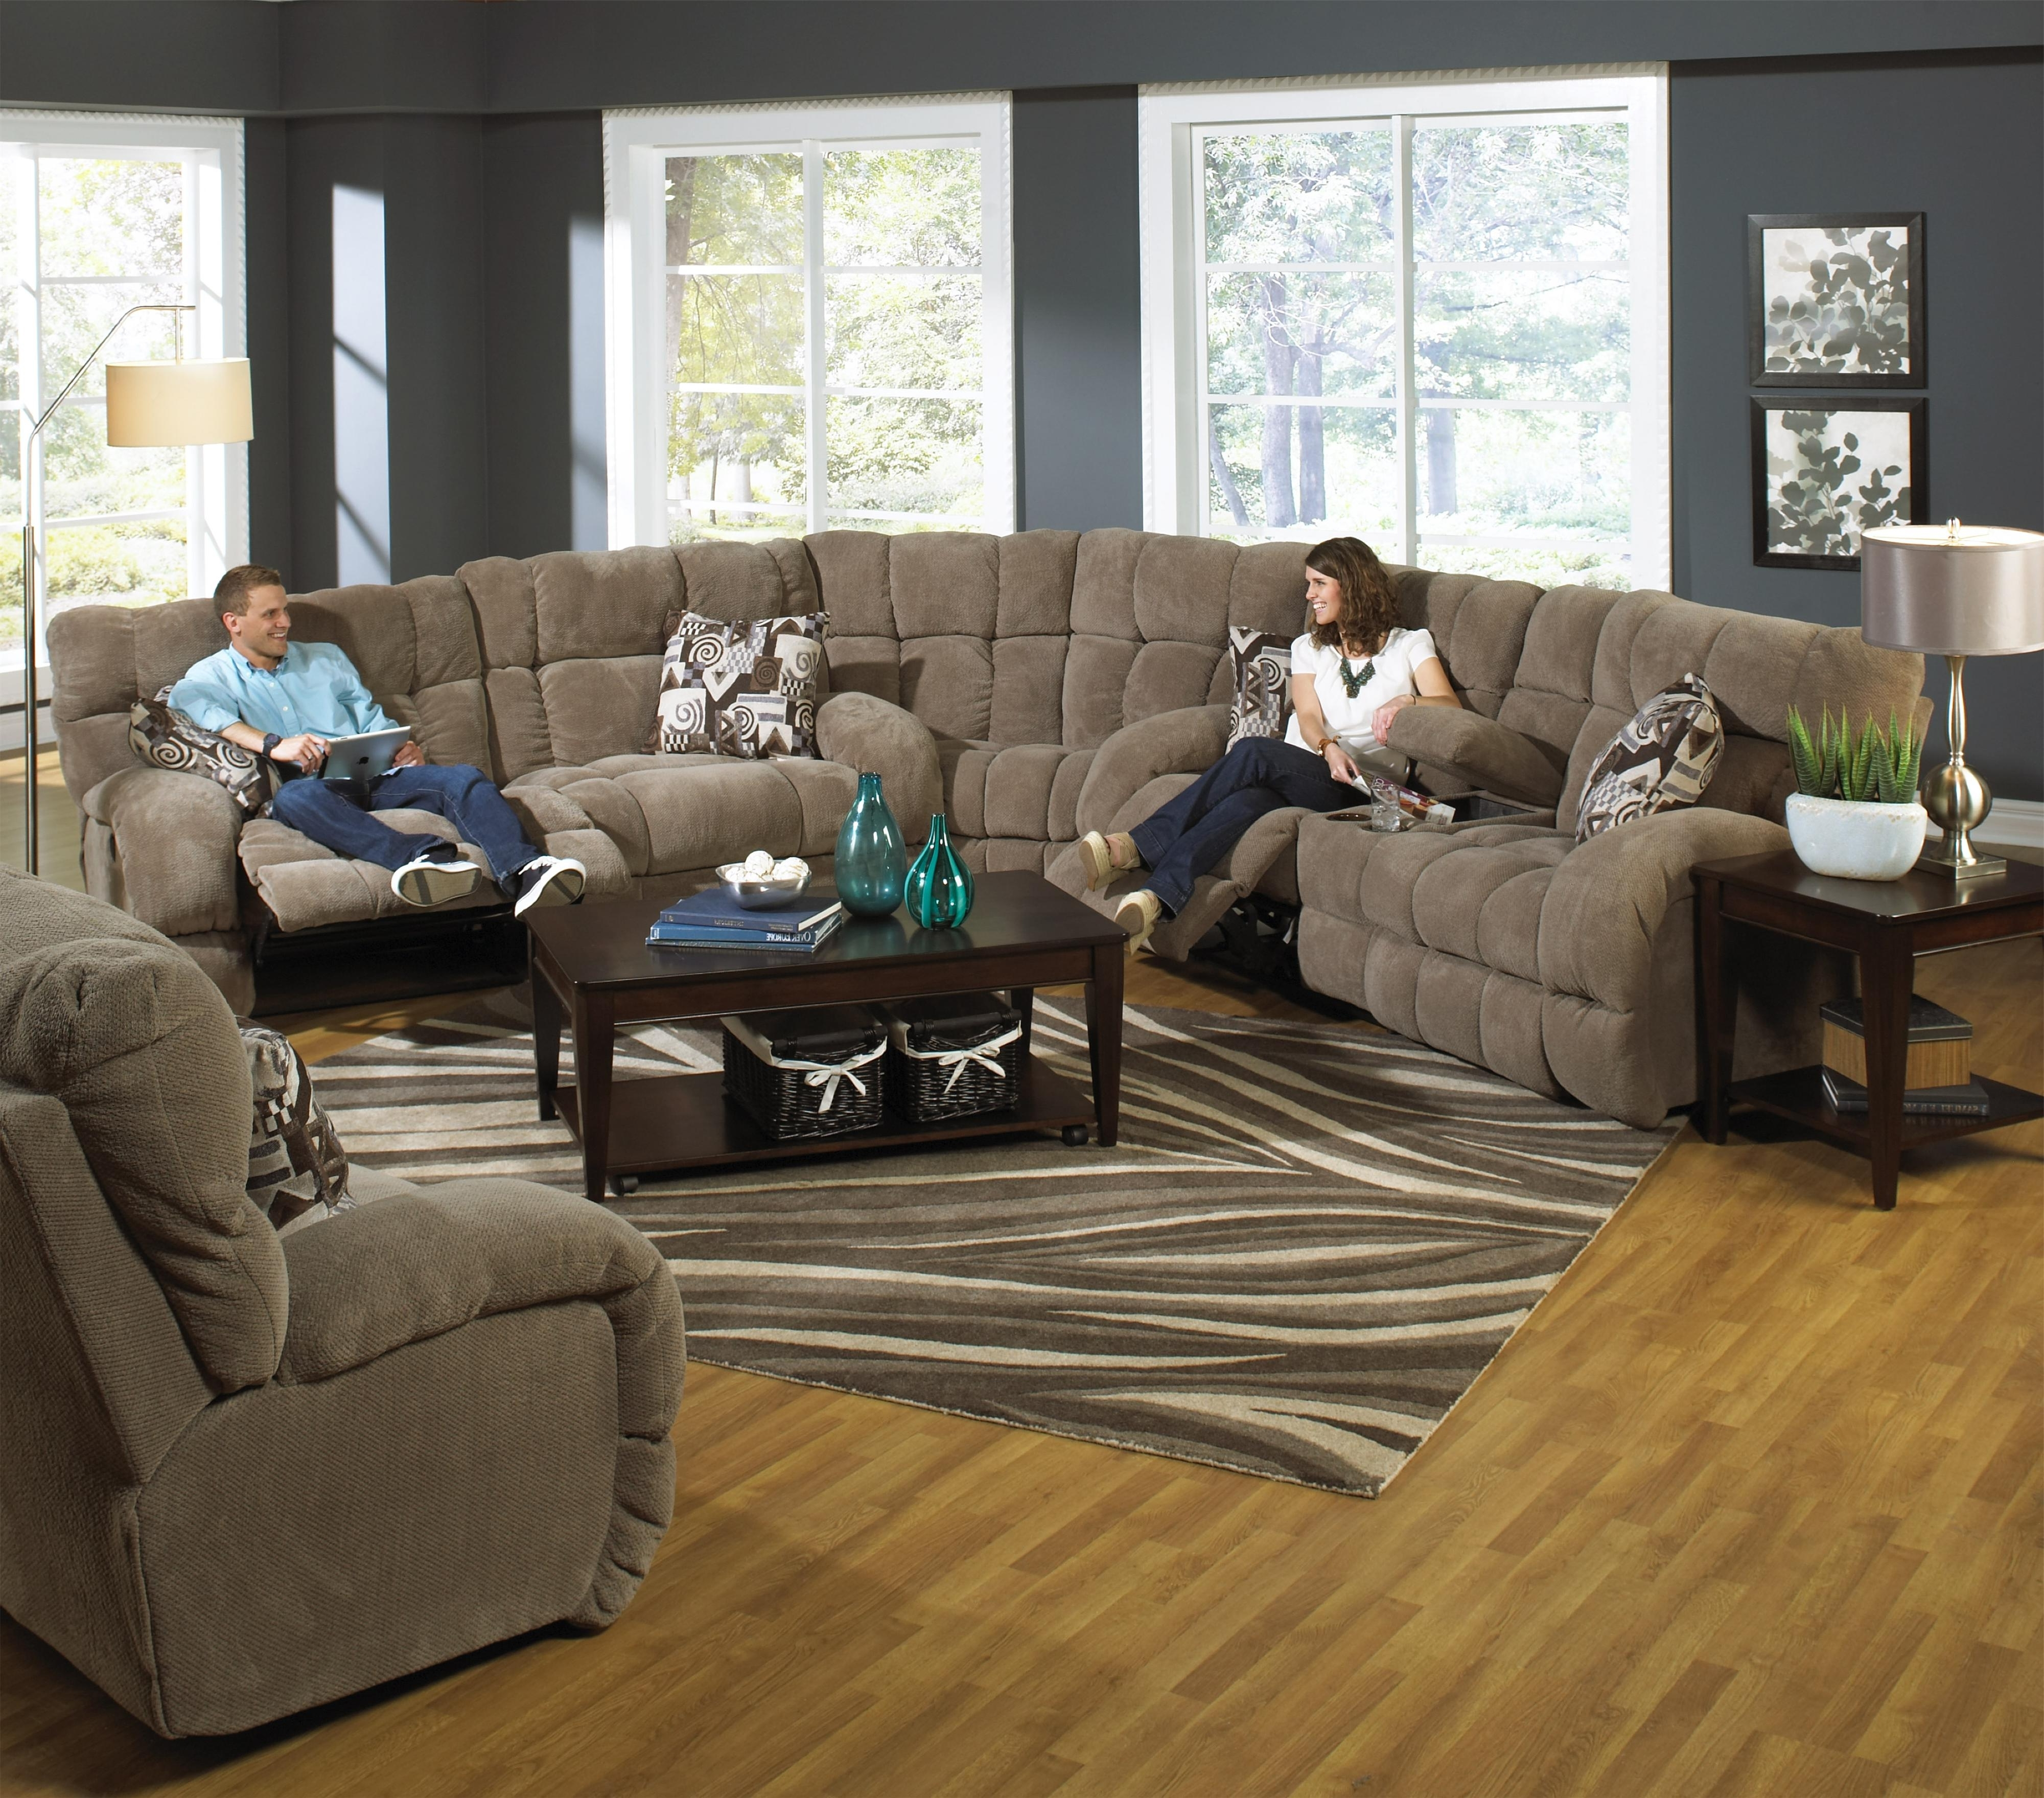 Favorite Power Reclining Sectional Sofa With Cup Holderscatnapper With Regard To Sectional Sofas With Cup Holders (View 7 of 15)